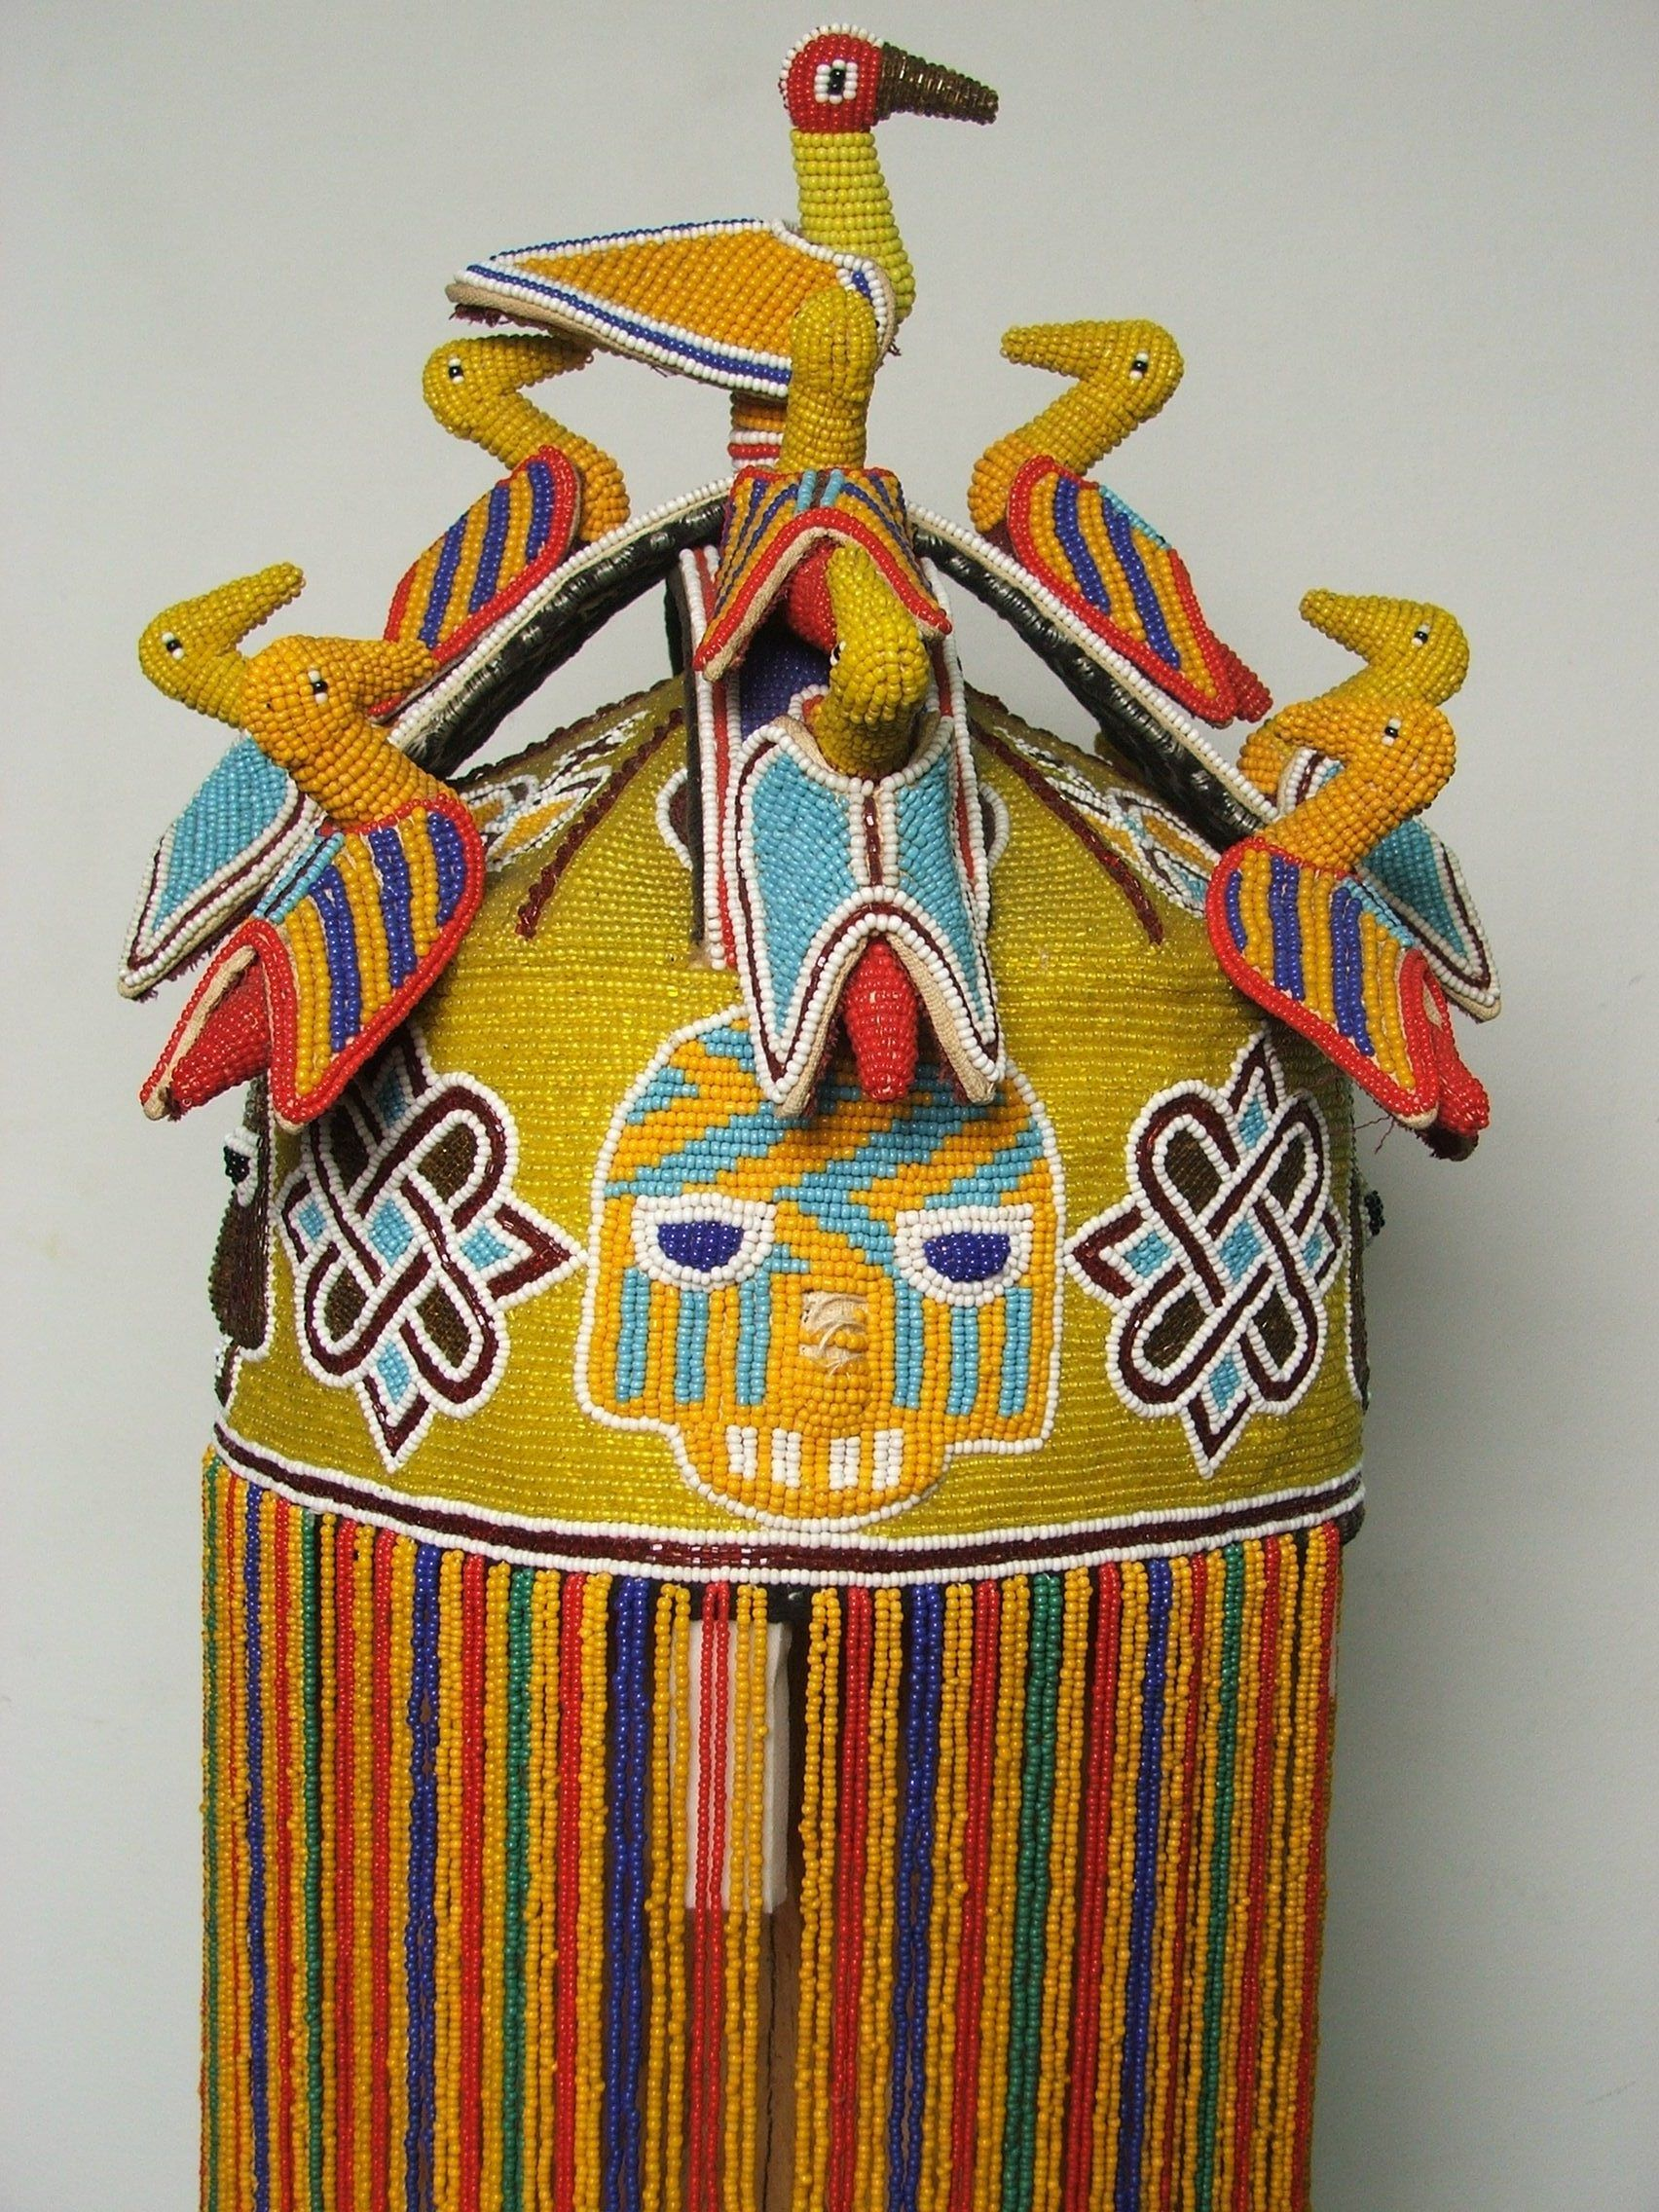 Yoruba ade oba adnl kings beaded crown nigeria african yoruba ade oba adnl kings beaded crown nigeria biocorpaavc Choice Image